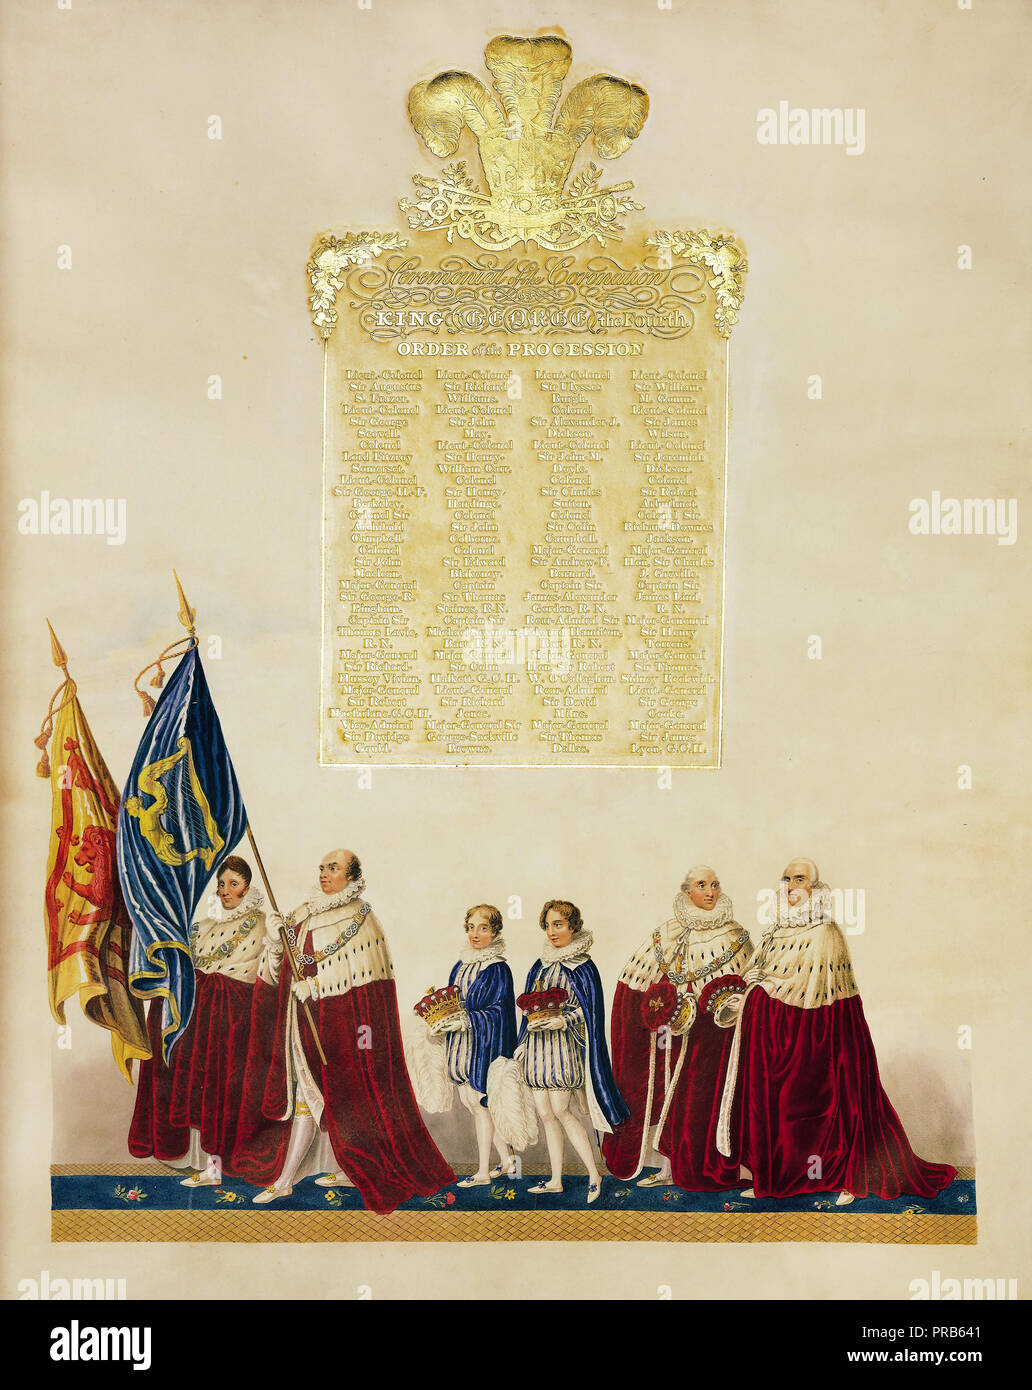 John Whittaker, Ceremonial of the Coronation of King George IV 1823 Printed on japan vellum, Royal Collection of the United Kingdom. - Stock Image